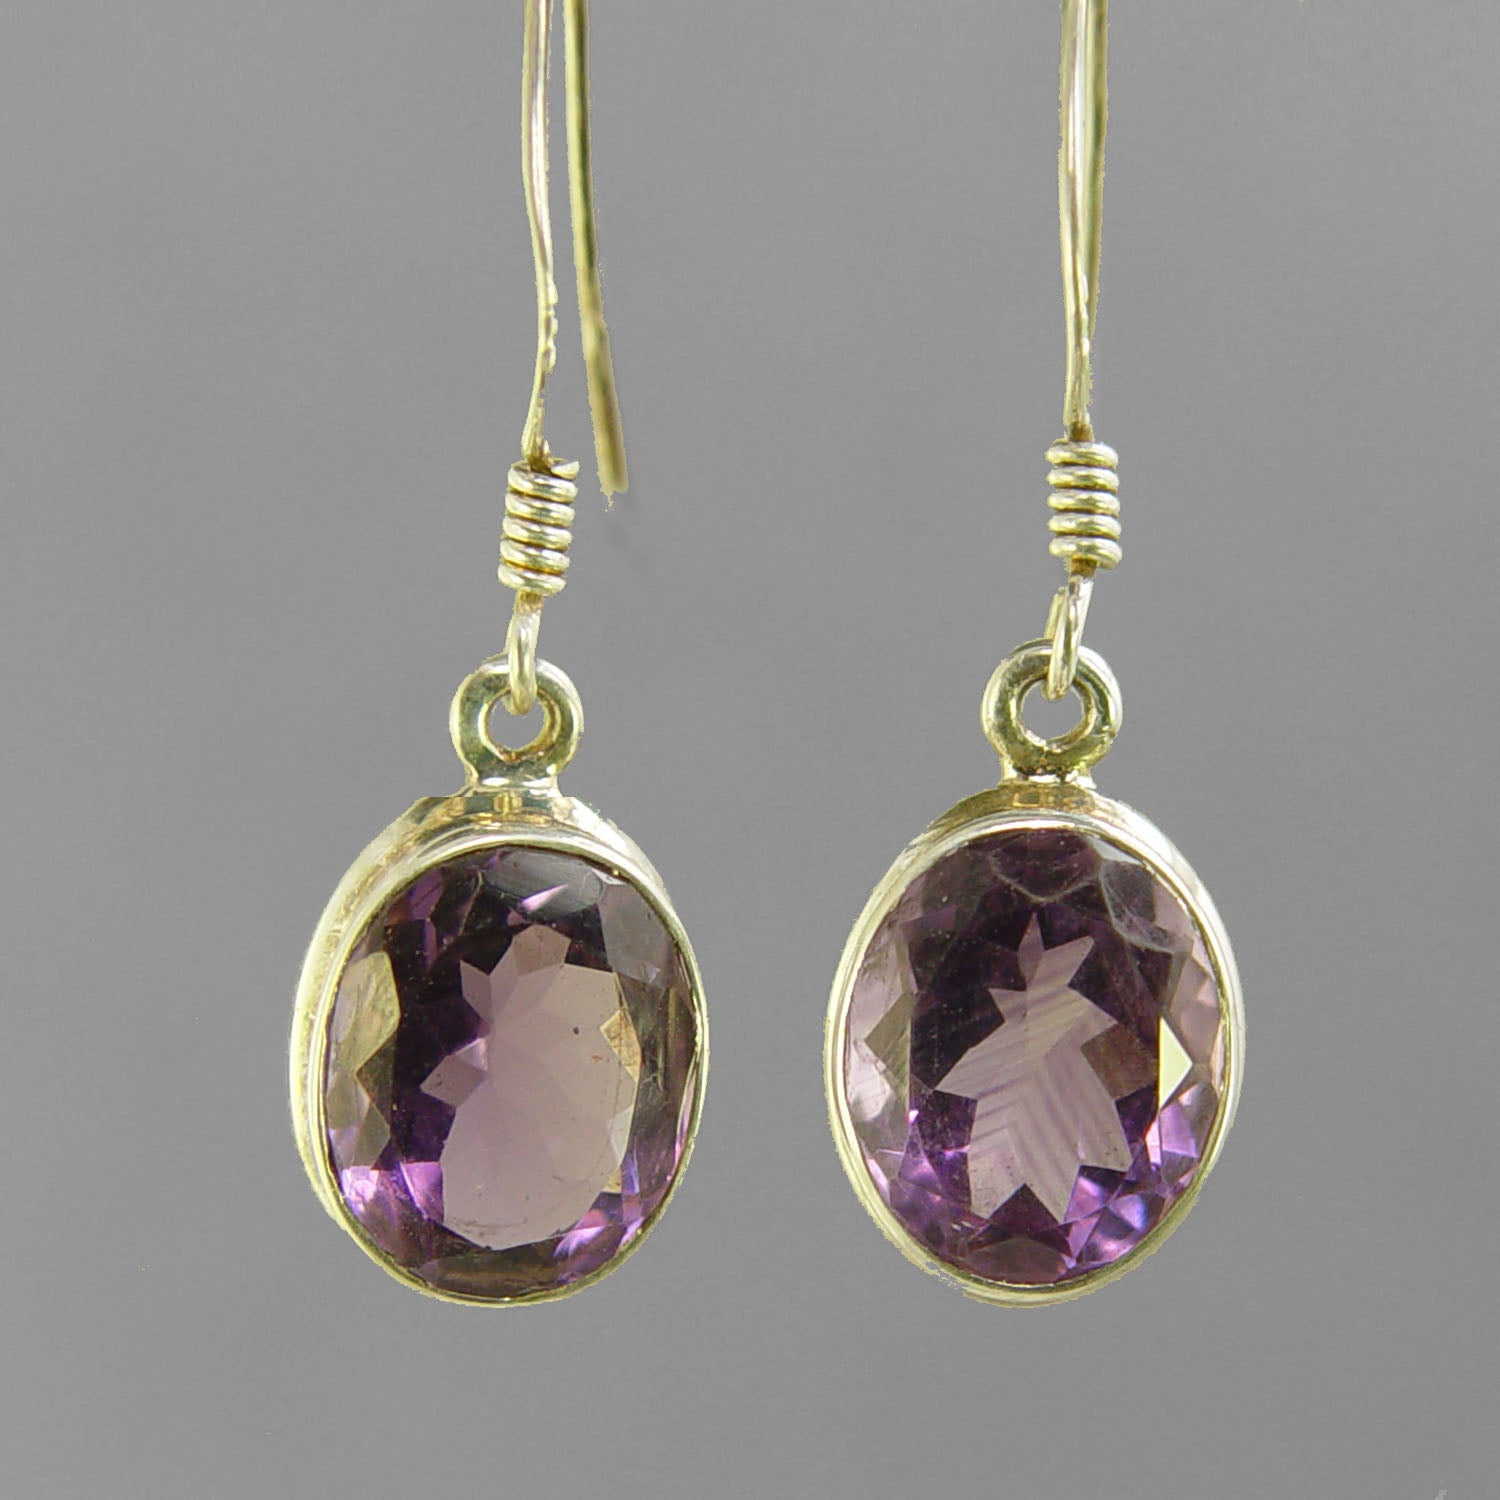 Amethyst Faceted Oval Bezel Set Sterling Silver Earrings - 7 CTW